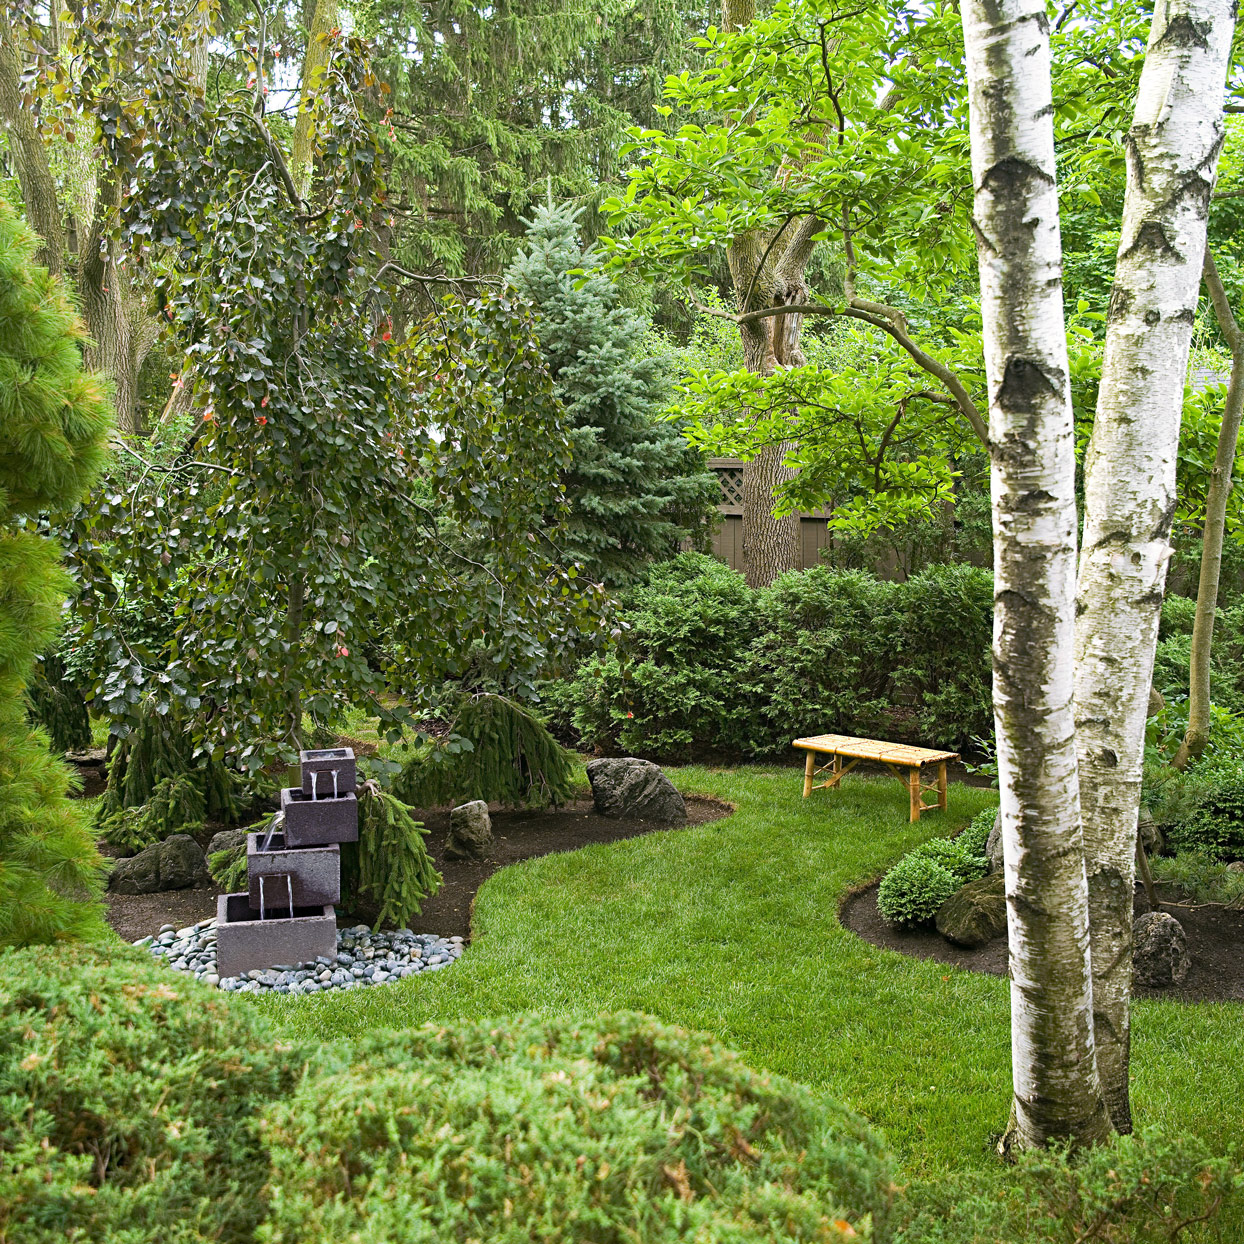 backyard nook created by trees and shrubs